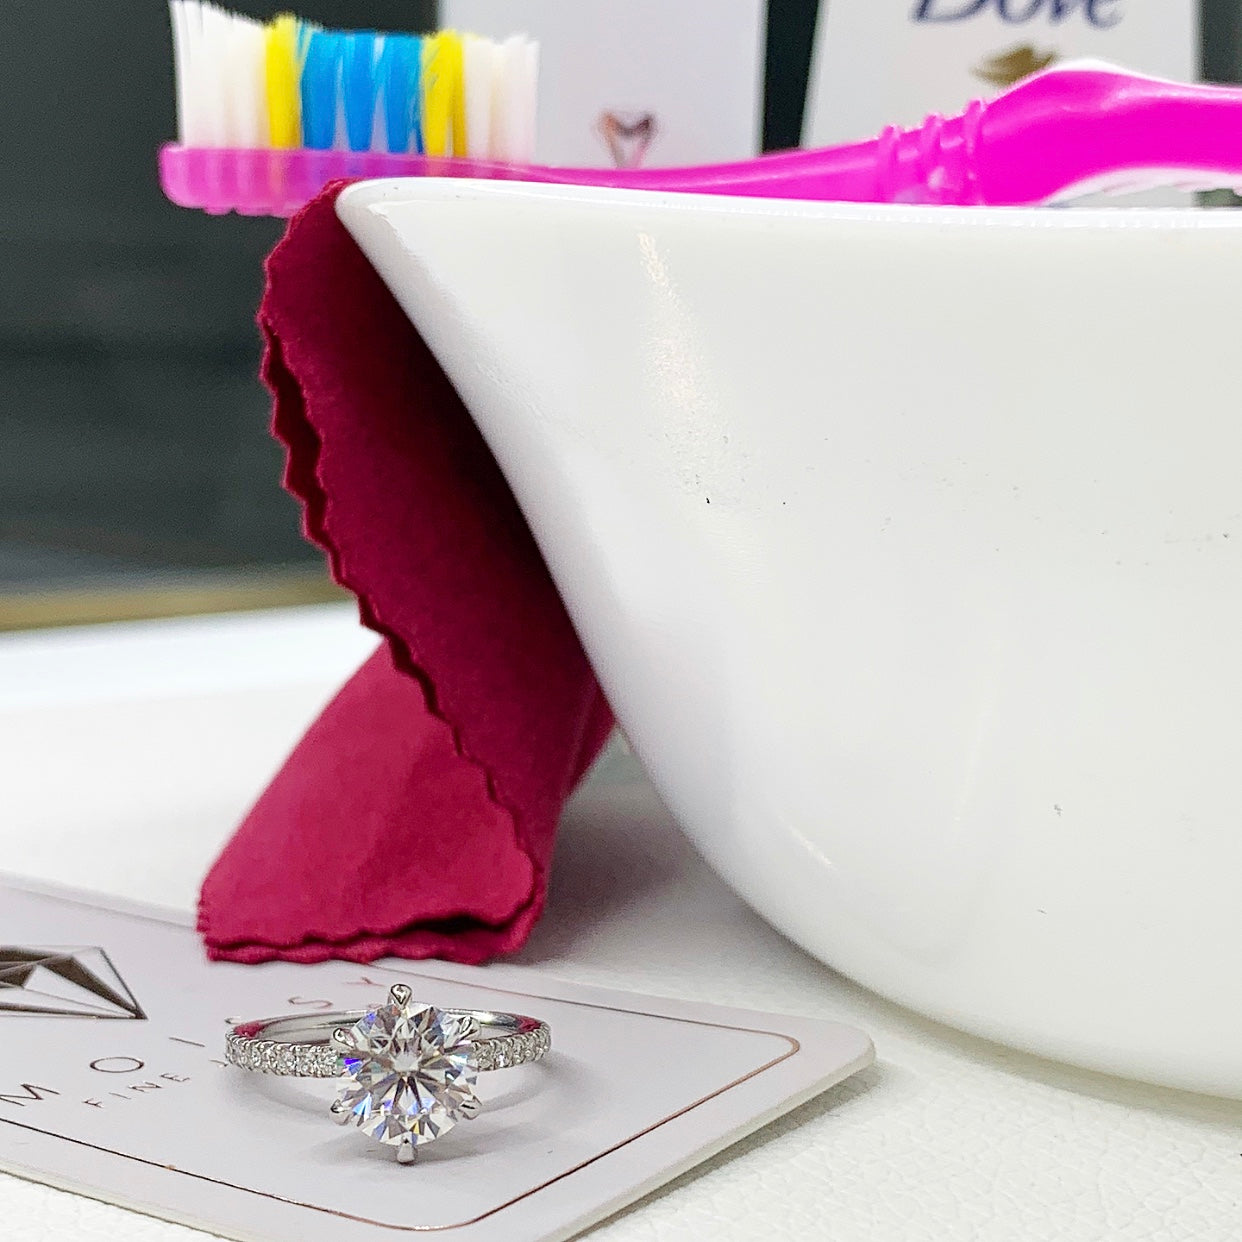 How Will My Moissanite Hold Up To Frequent Hand-washing And Sanitizing